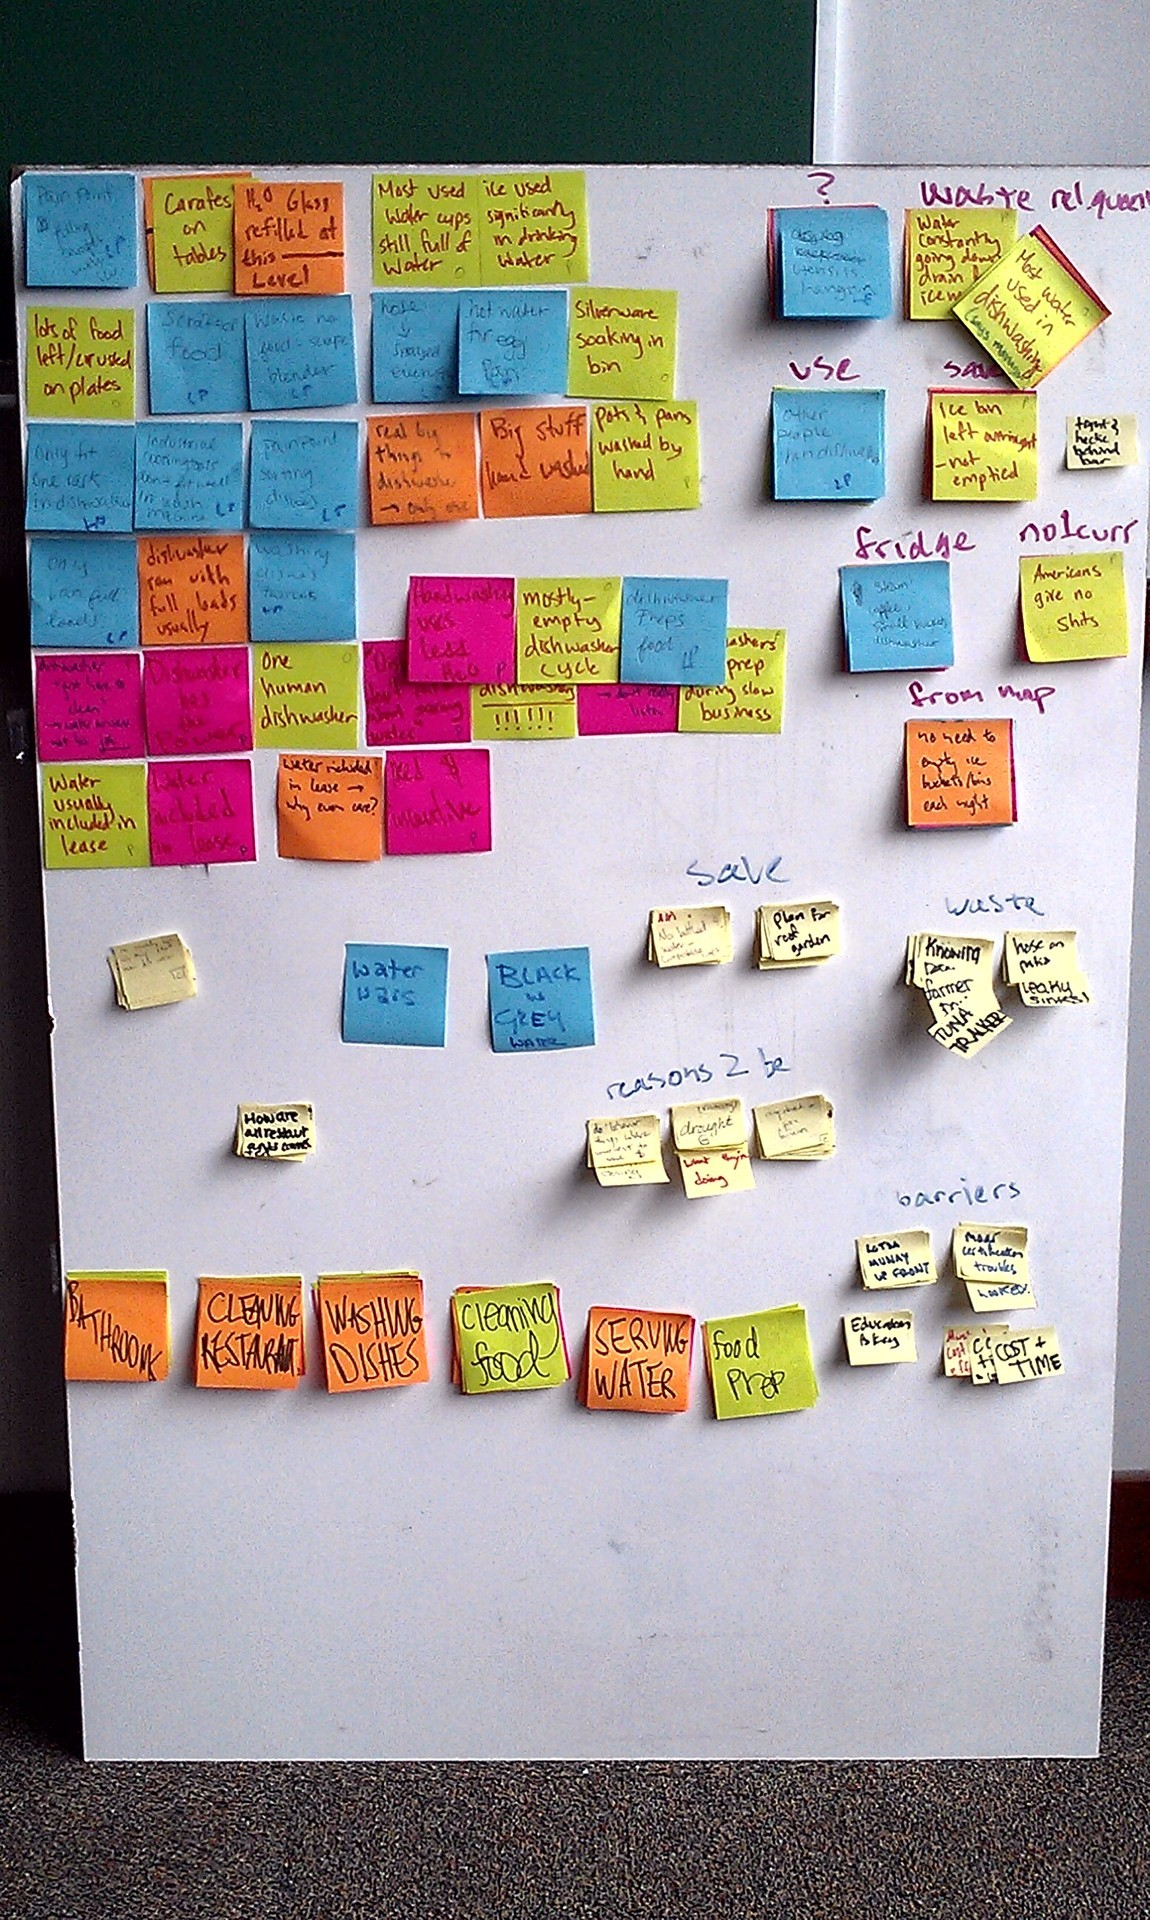 Change in workspace for the day = lots of post-its on a little whiteboard.